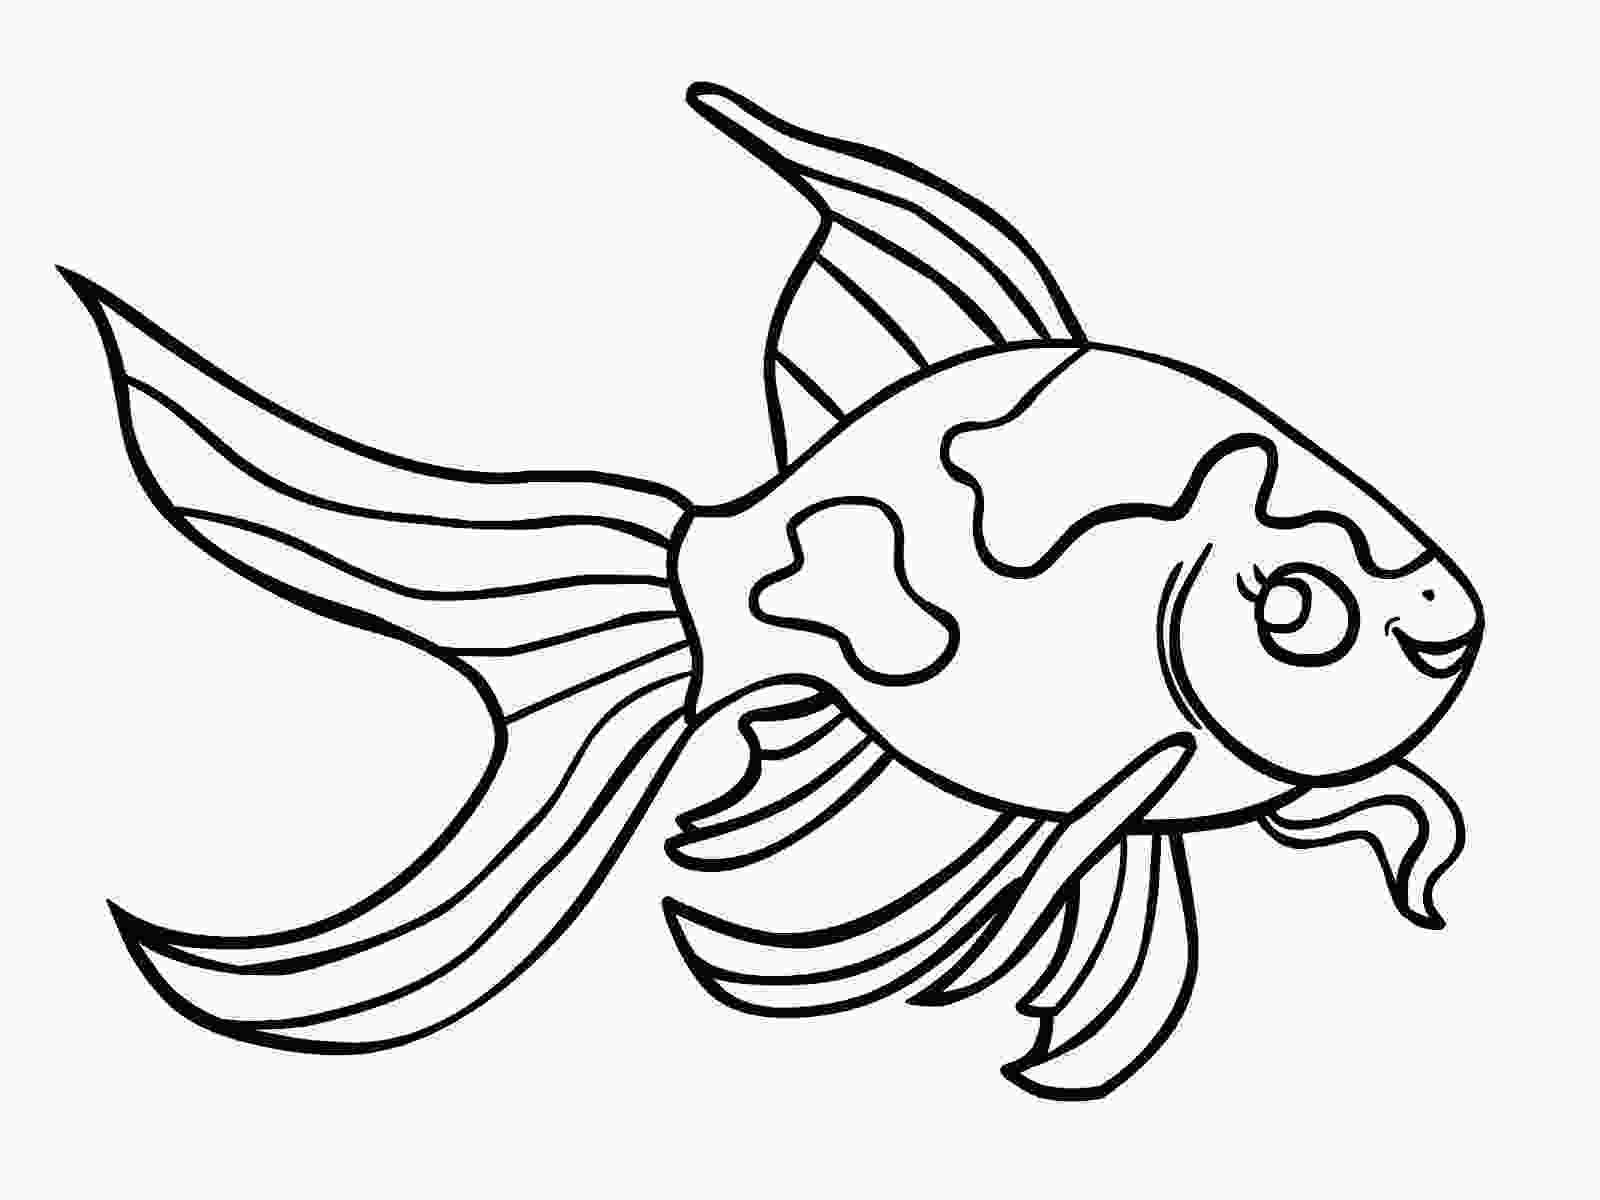 fish to color printable Free Printable Goldfish Coloring.